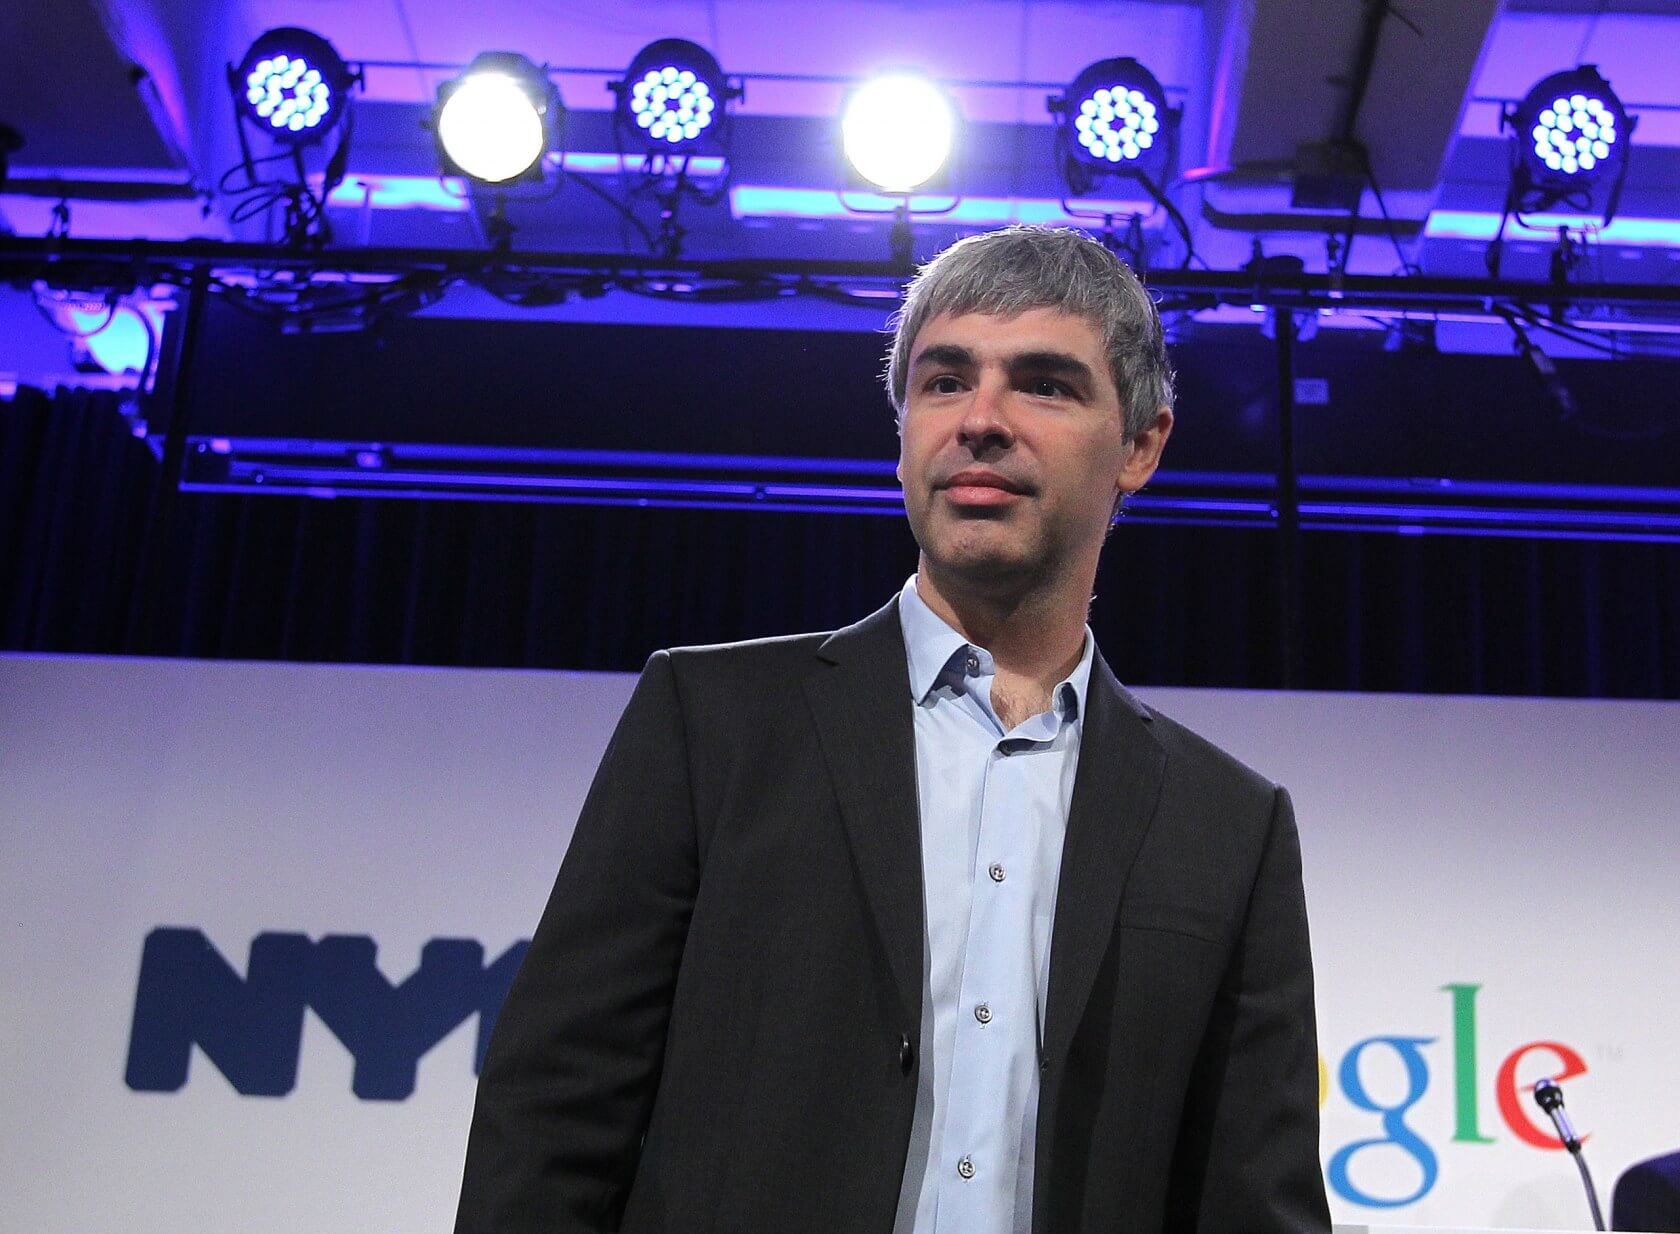 Google co-founder Larry Page made a veiled threat to leave the company in 2011